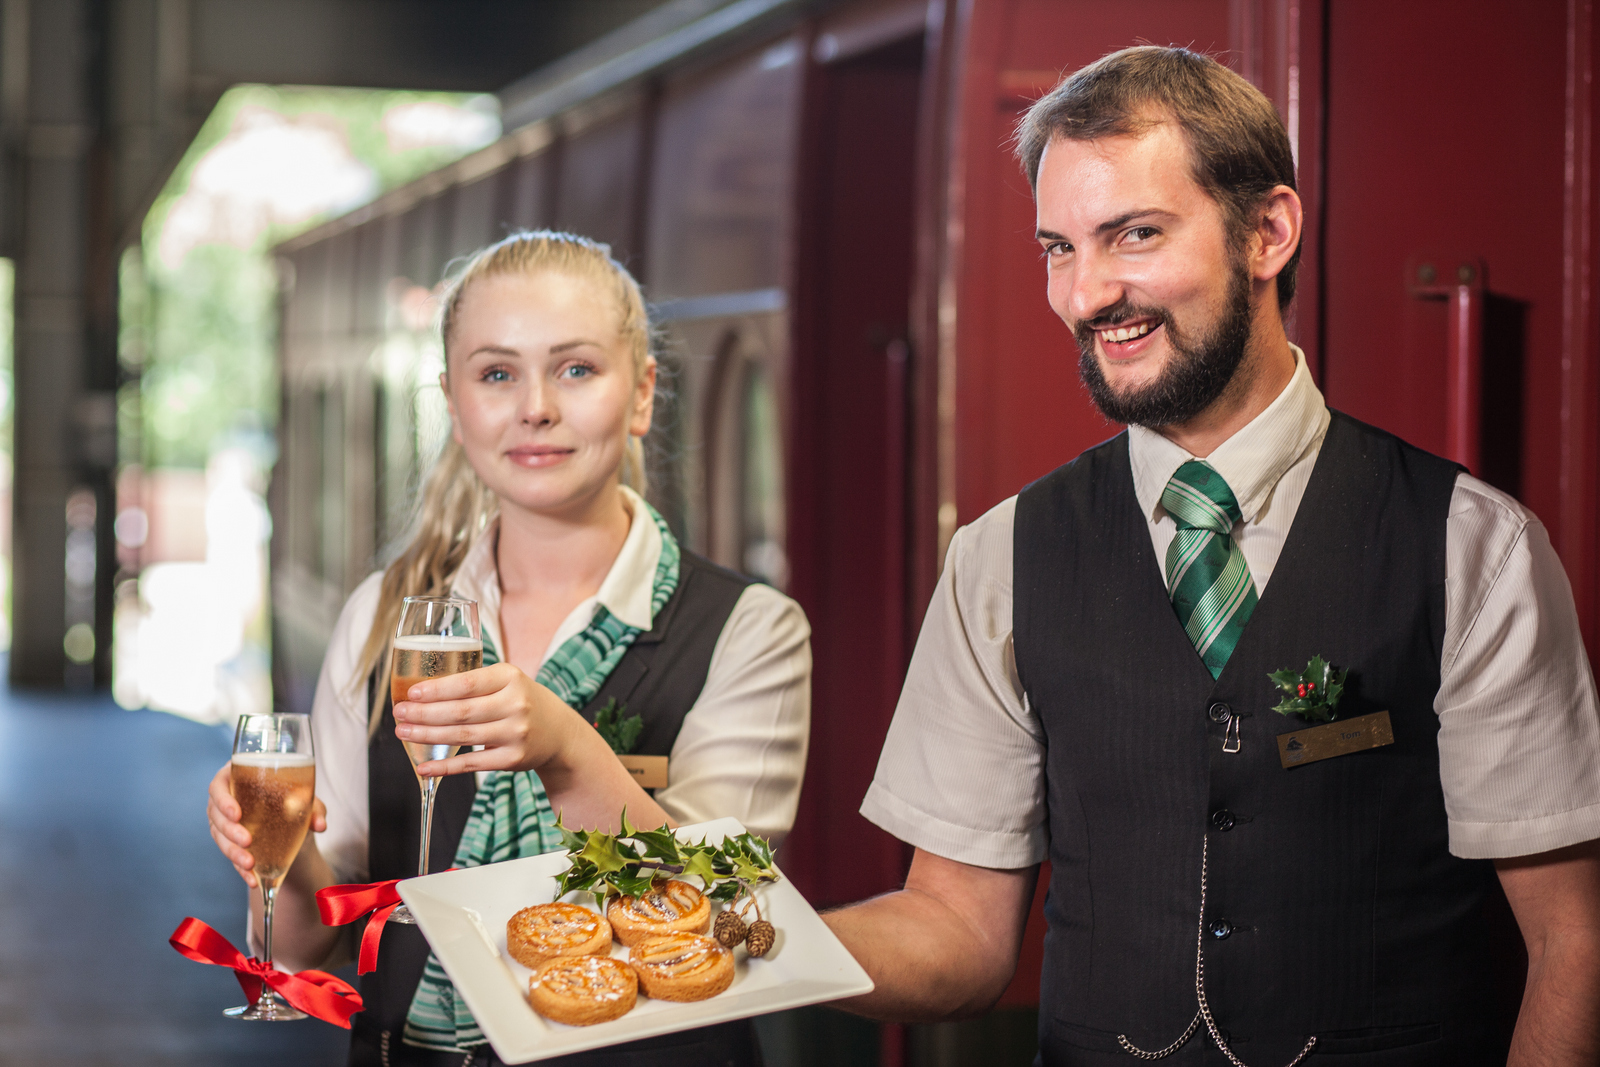 You'll be welcomed aboard with sparkling wine or mulled wine and festive treats